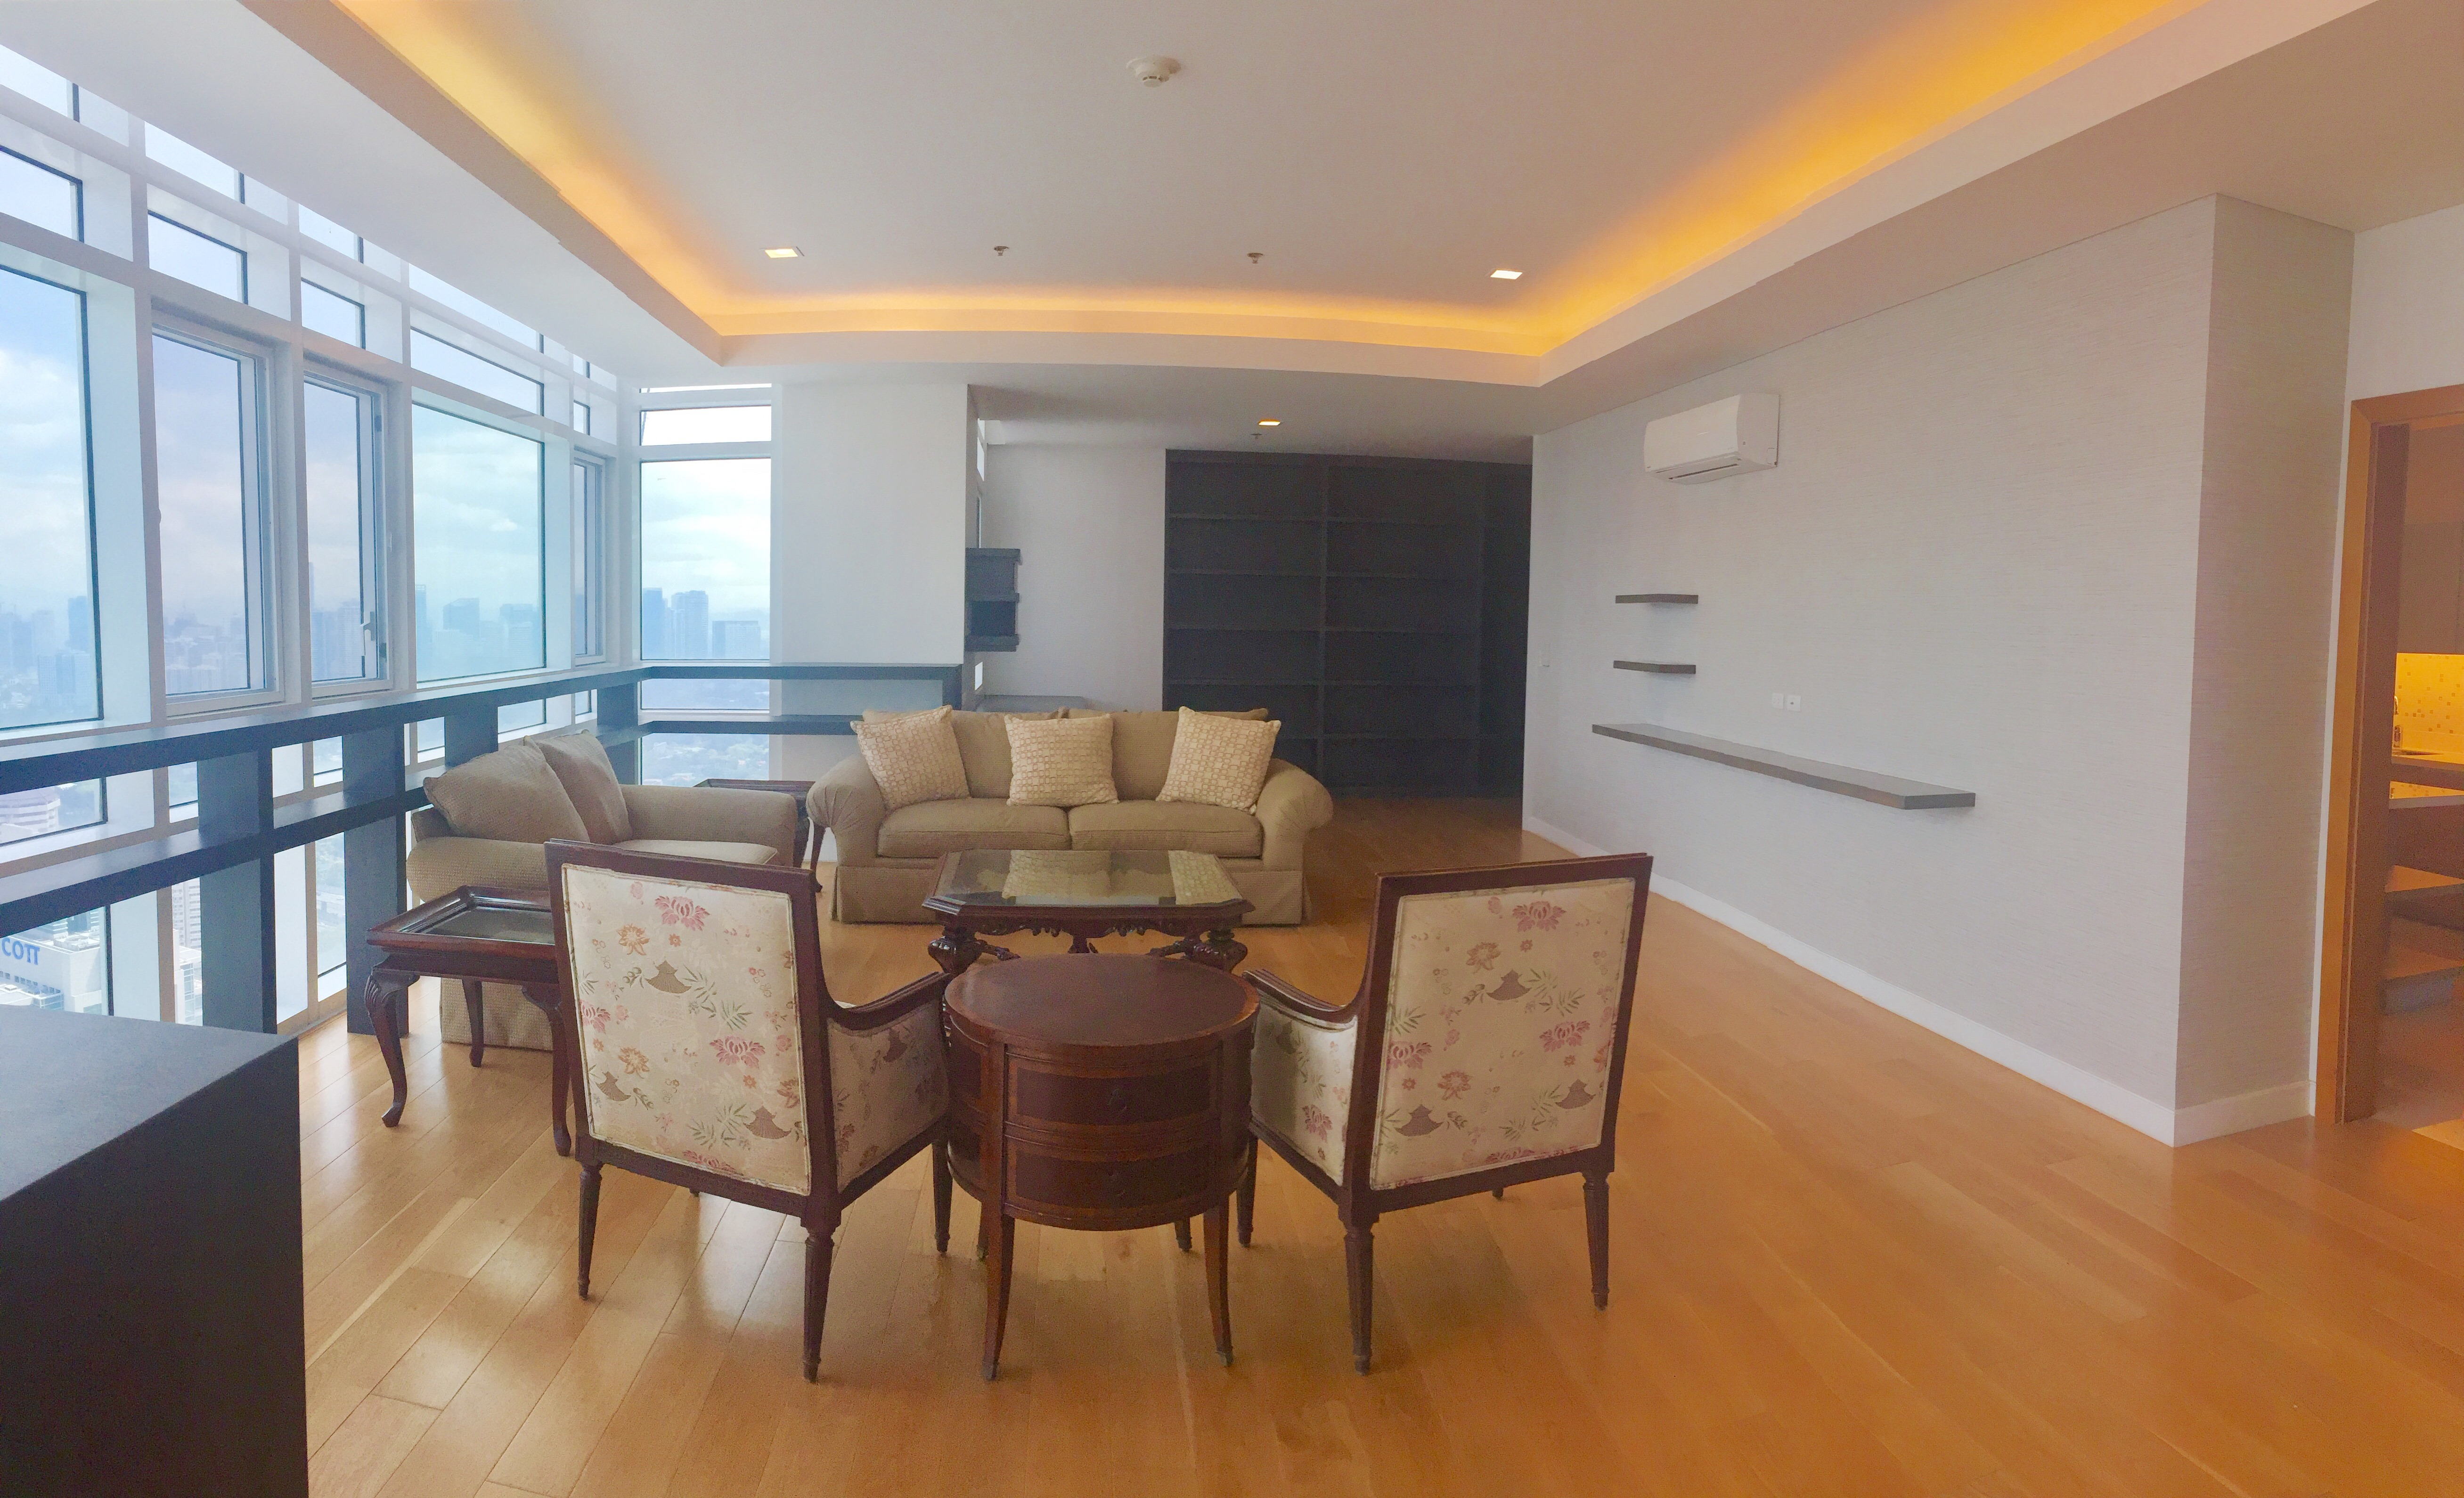 Penthouse Fully furnished 3 bedroom condo unit for lease at PARK TERRACES